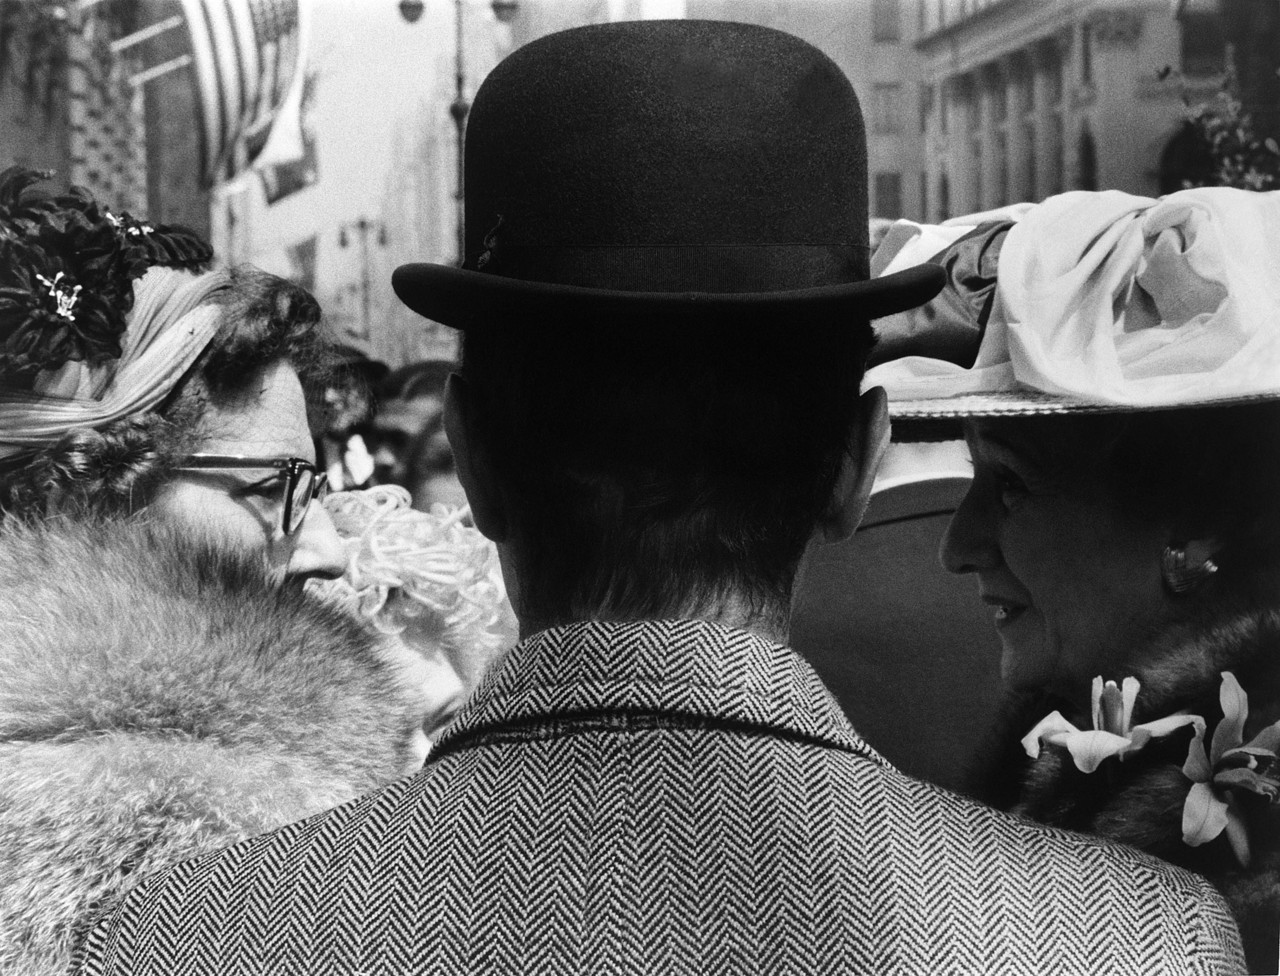 Leon Levinstein, Fifth Avenue, 1959